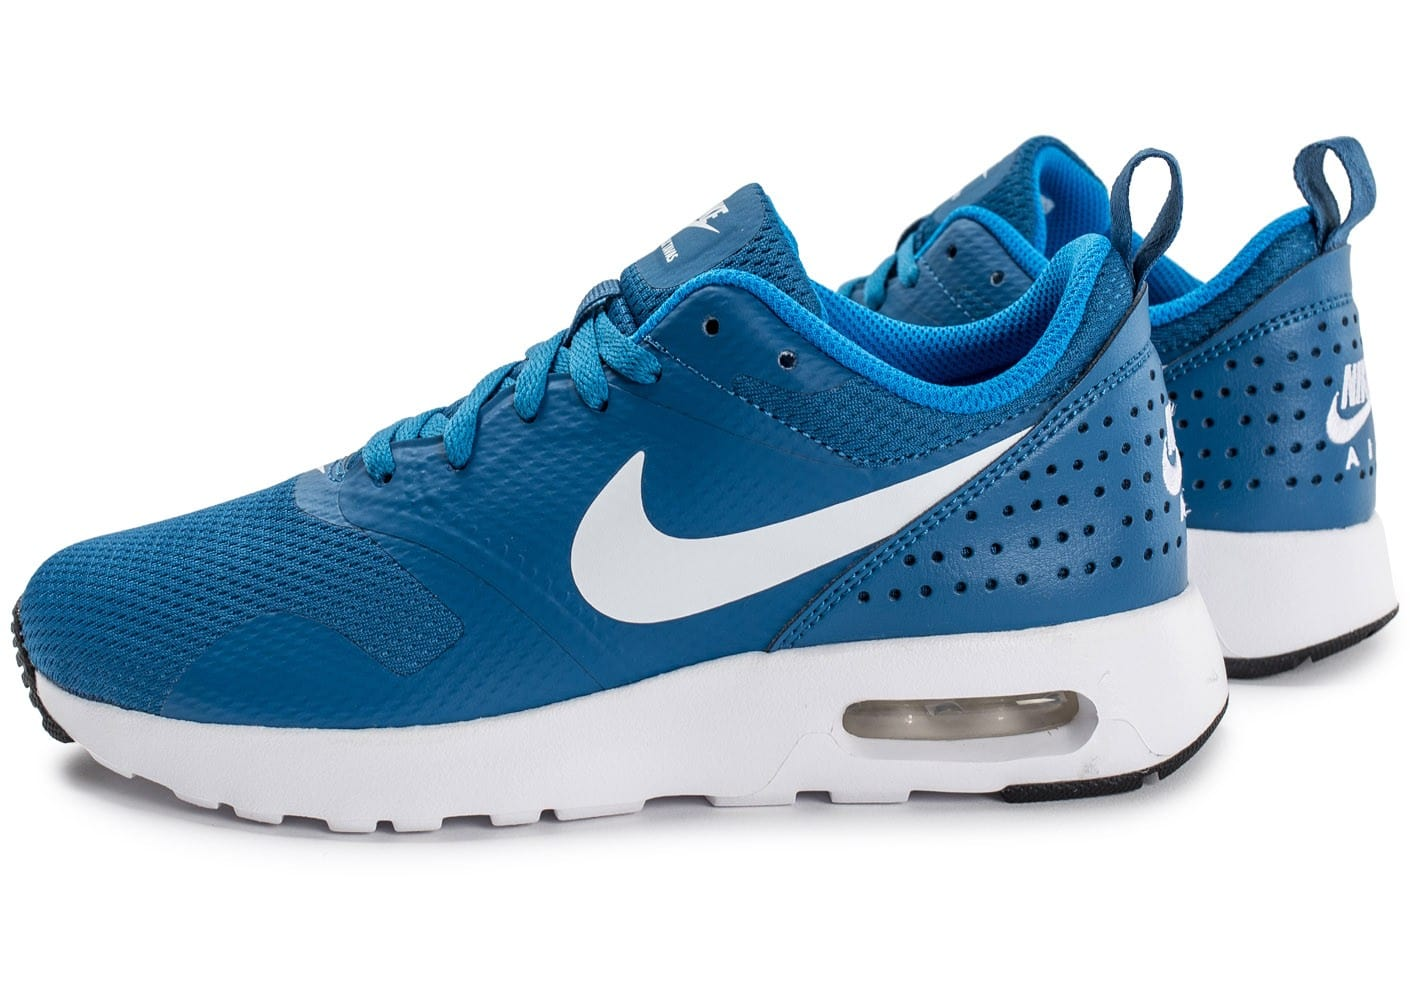 nike air max tavas enfant bleu chaussures enfant chausport. Black Bedroom Furniture Sets. Home Design Ideas